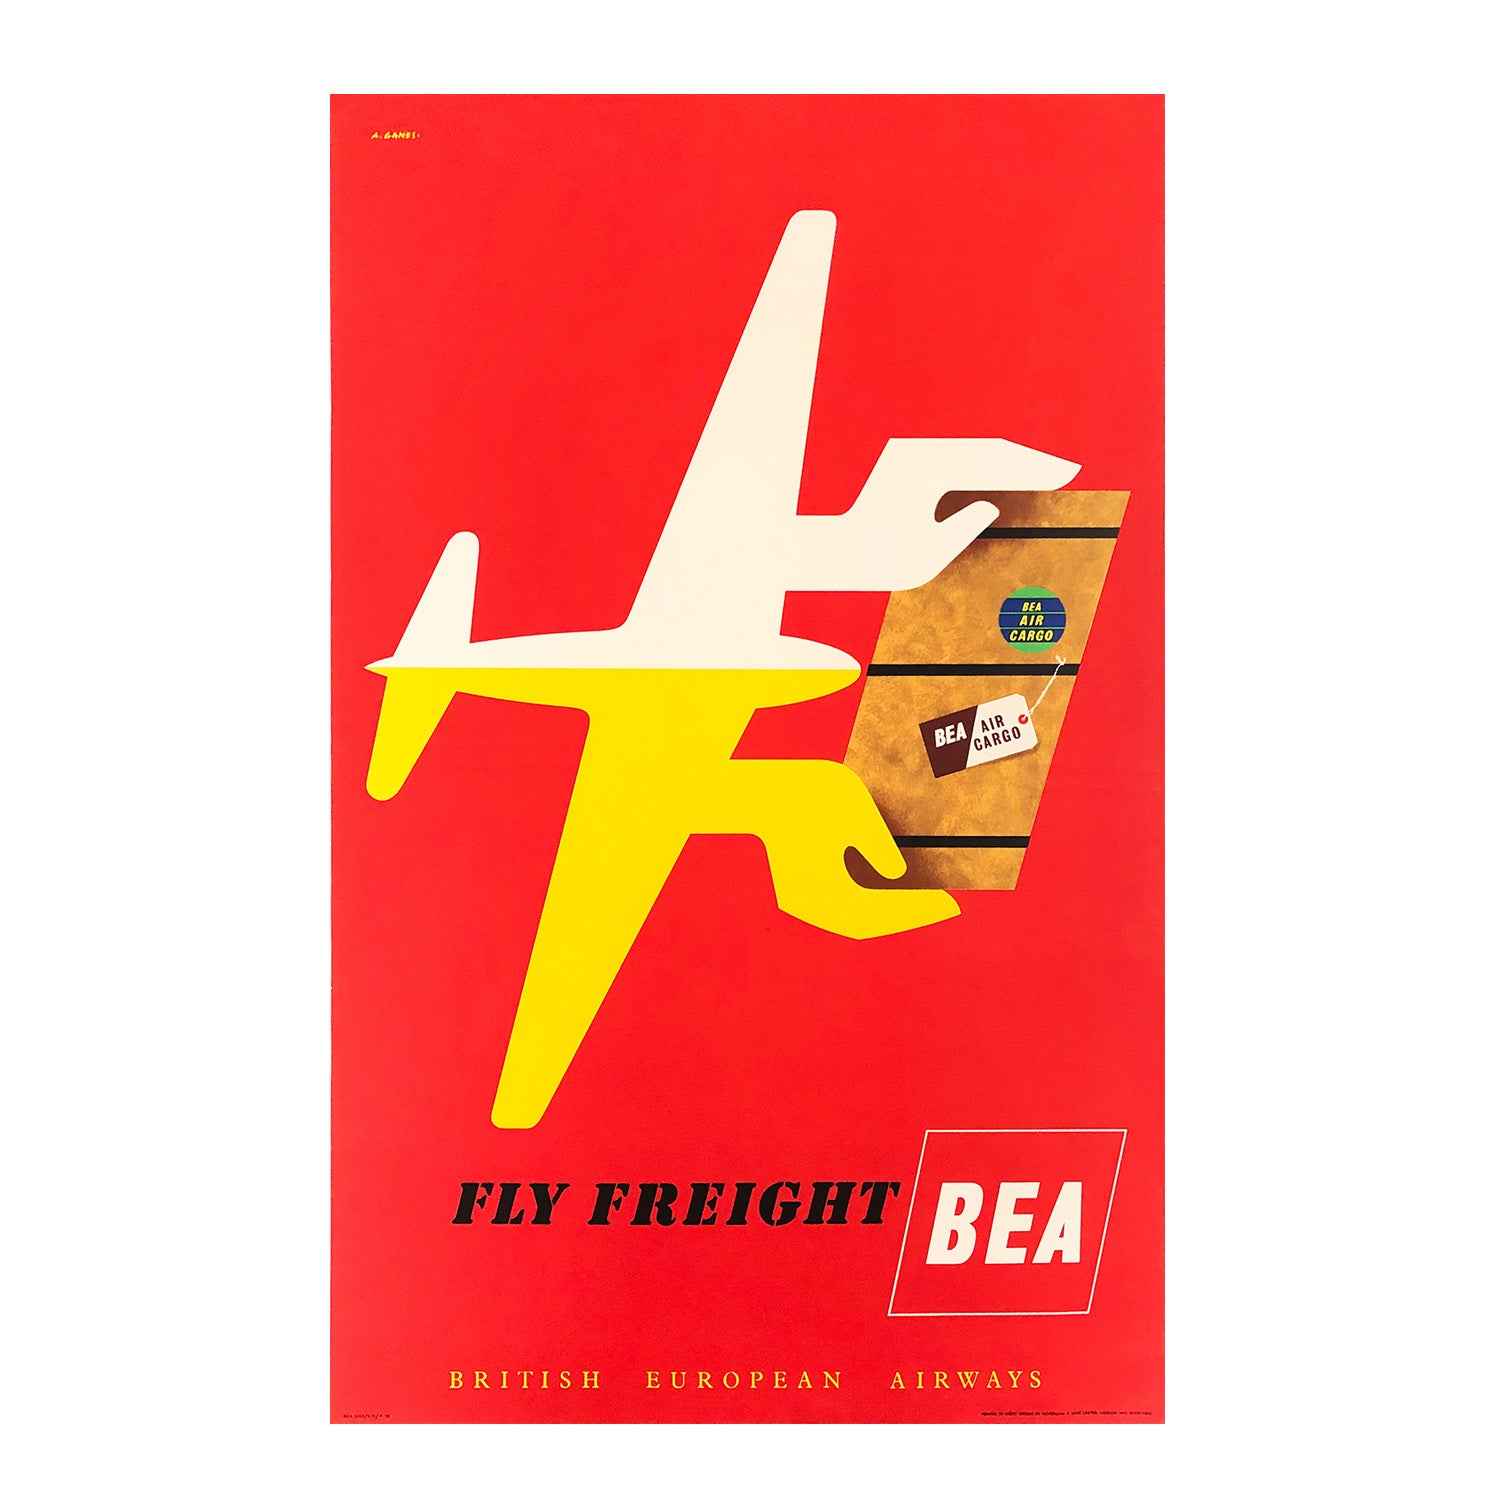 Original mid-century modern British European Airways poster by Britain's most significant post-war poster designer, Abram Games.